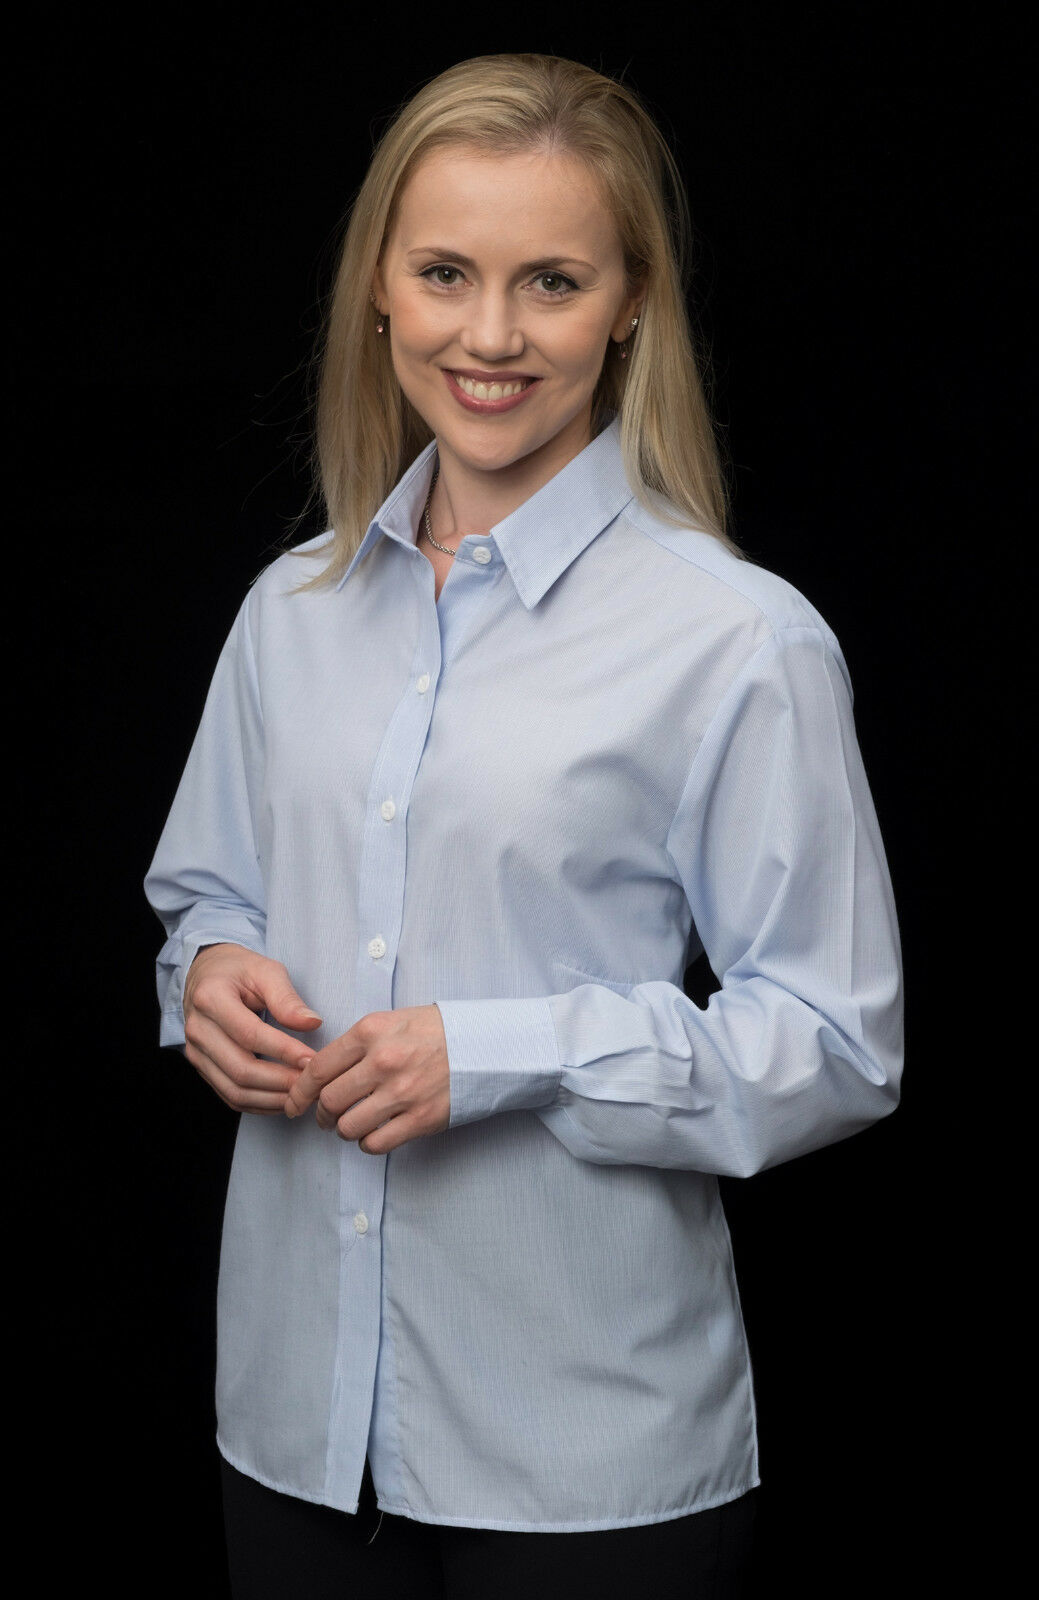 Ladies Blouse - Ladies Shirt - Australian Traditional Clothing - 610410